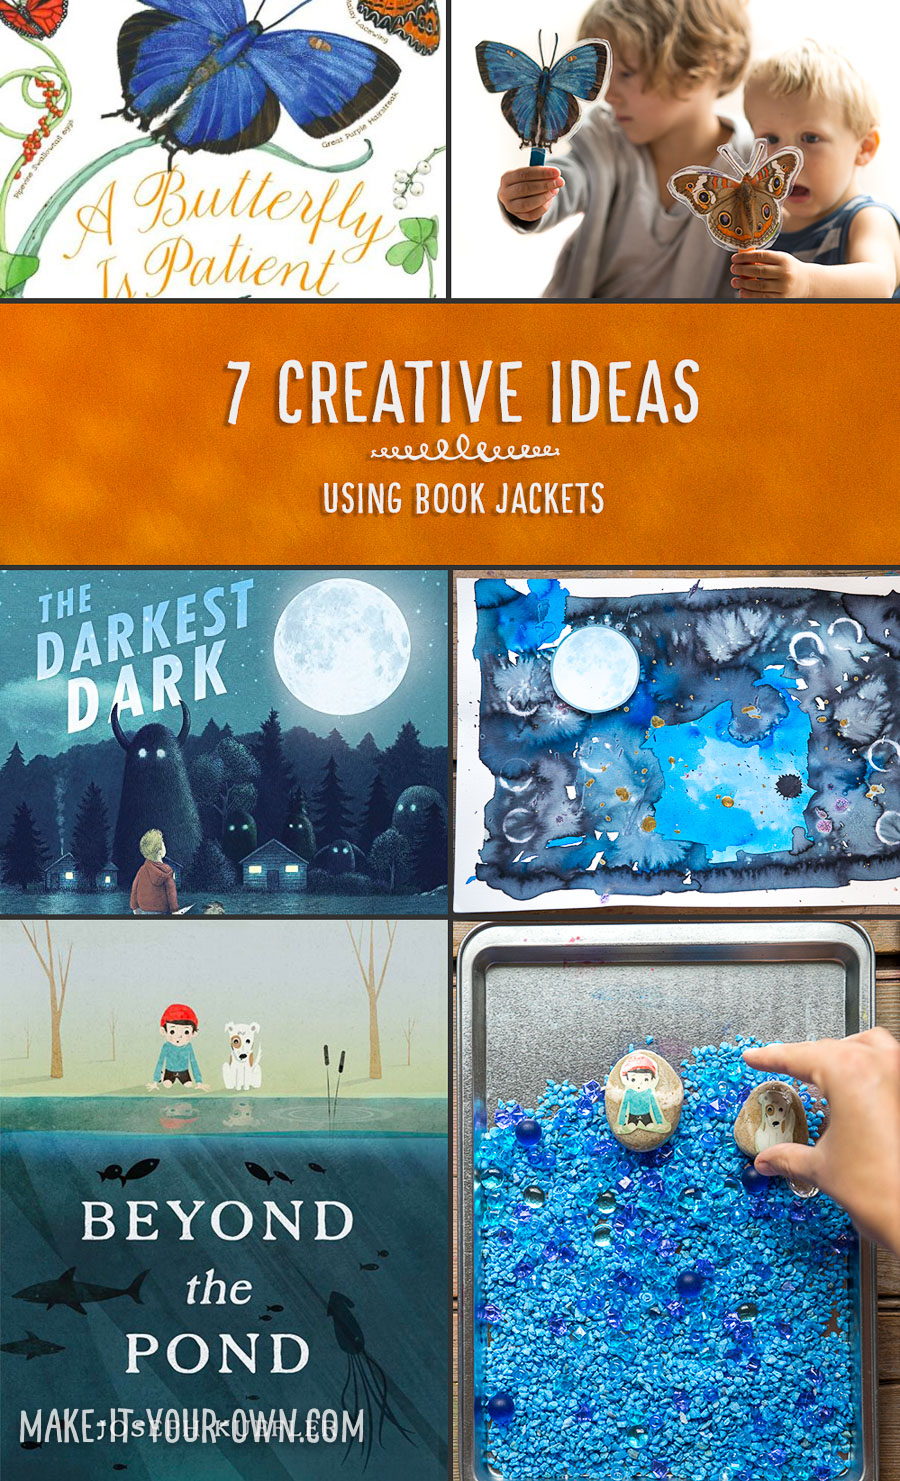 7 Creative Ideas for Book Jackets